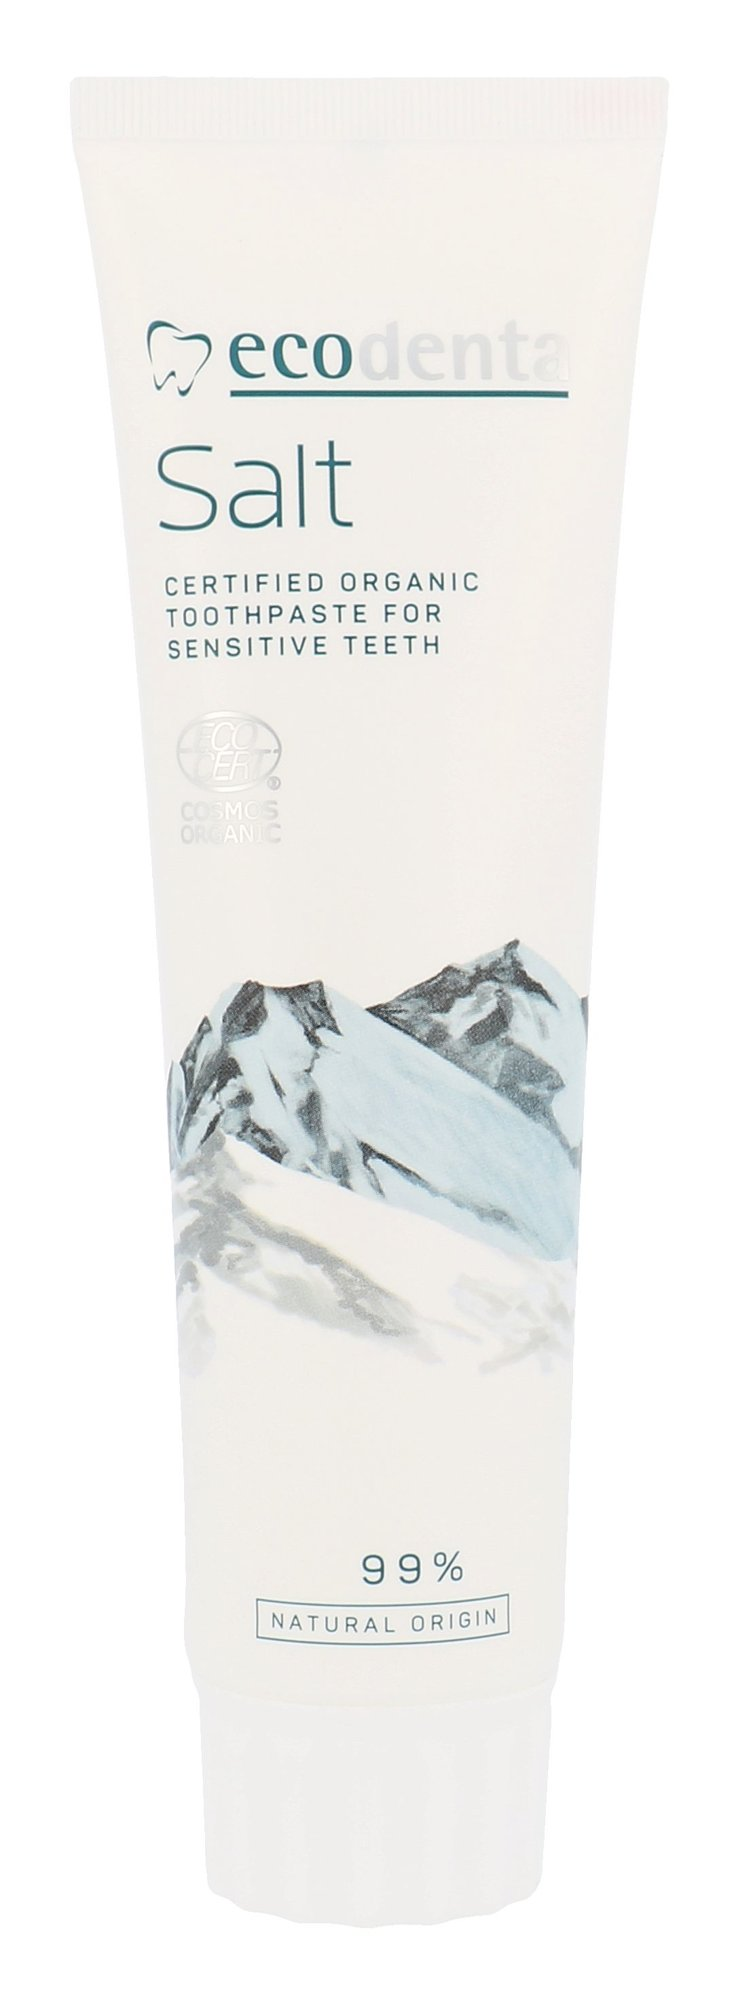 Ecodenta Certified Organic Toothpaste For Sensitive Teeth Cosmetic 100ml